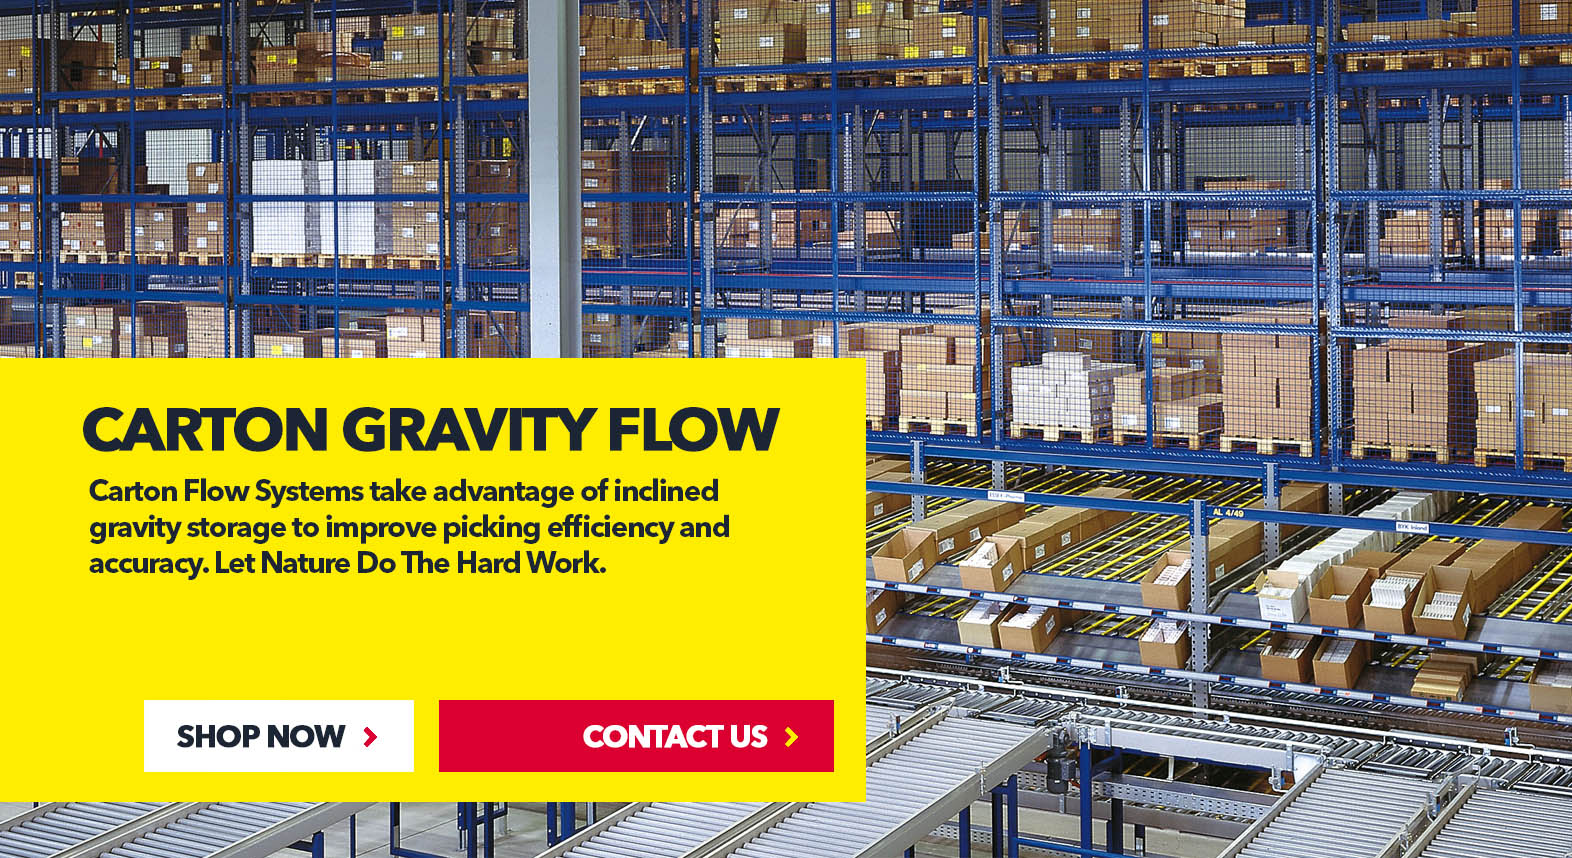 Carton Gravity Flow Systems by SSI Schaefer USA. Shop Now. Contact Us. www.chaefershelving.com